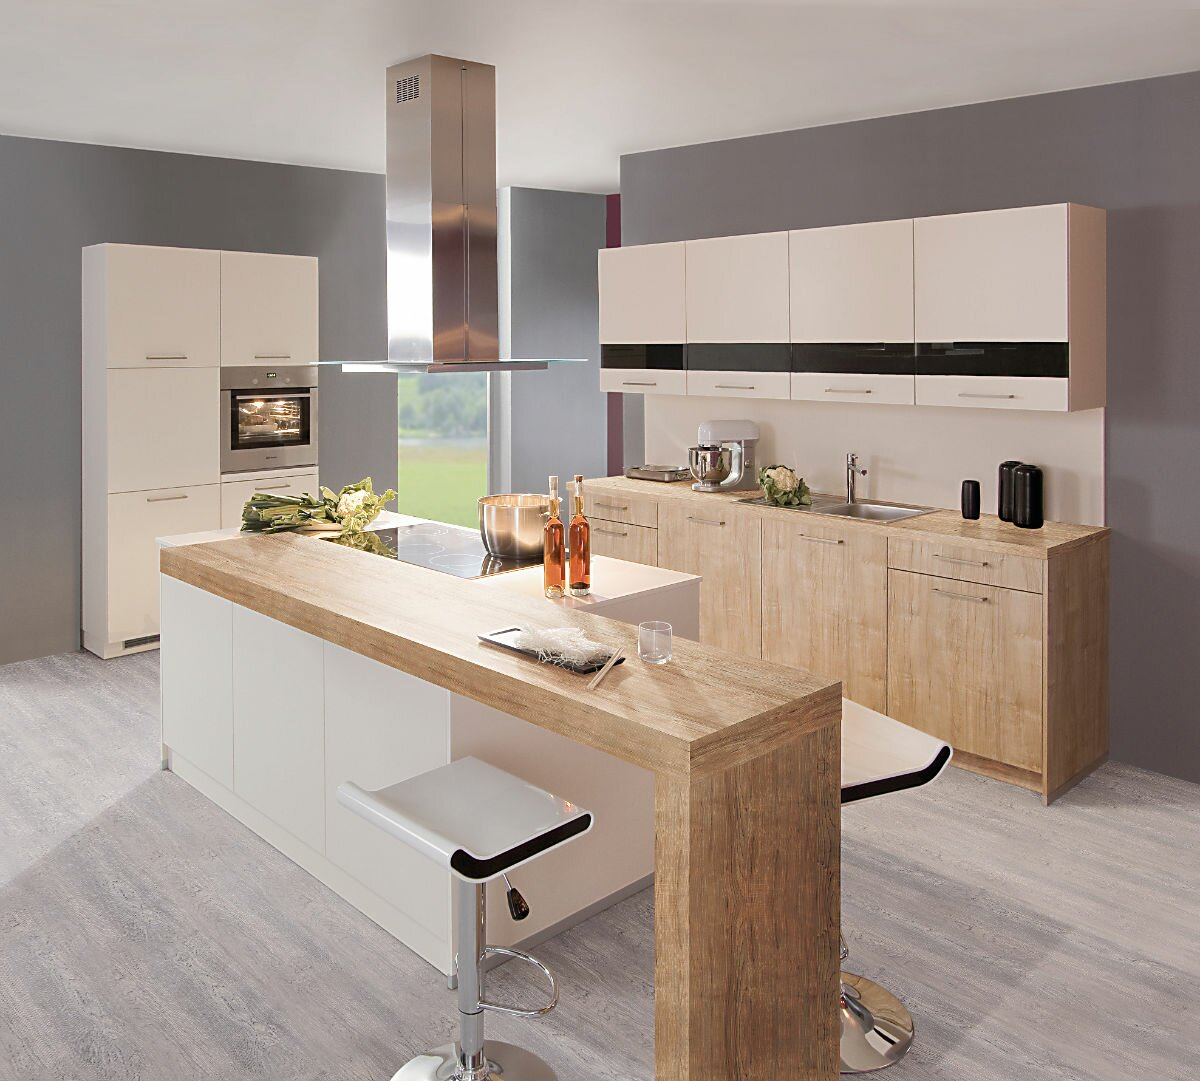 The 30 Best Kitchen Island Designs | MostBeautifulThings